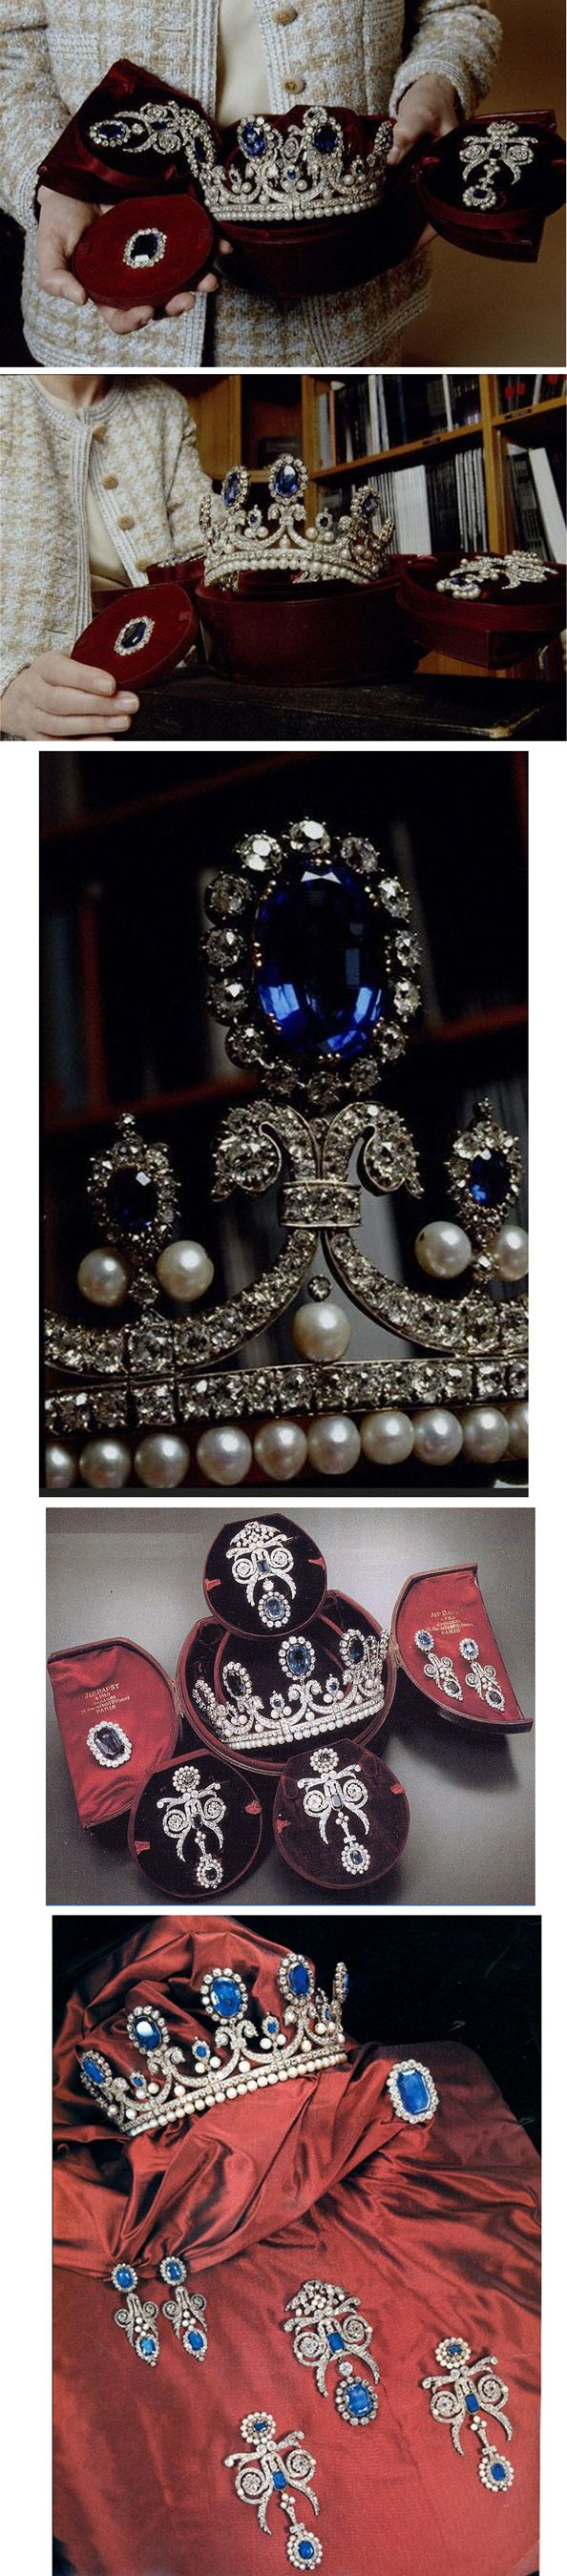 Queen Marie-Amélie's Sapphire, Diamond, and Pearl Tiara and Parure, France (1830; made by Bapst; sapphires, pearls, diamonds).